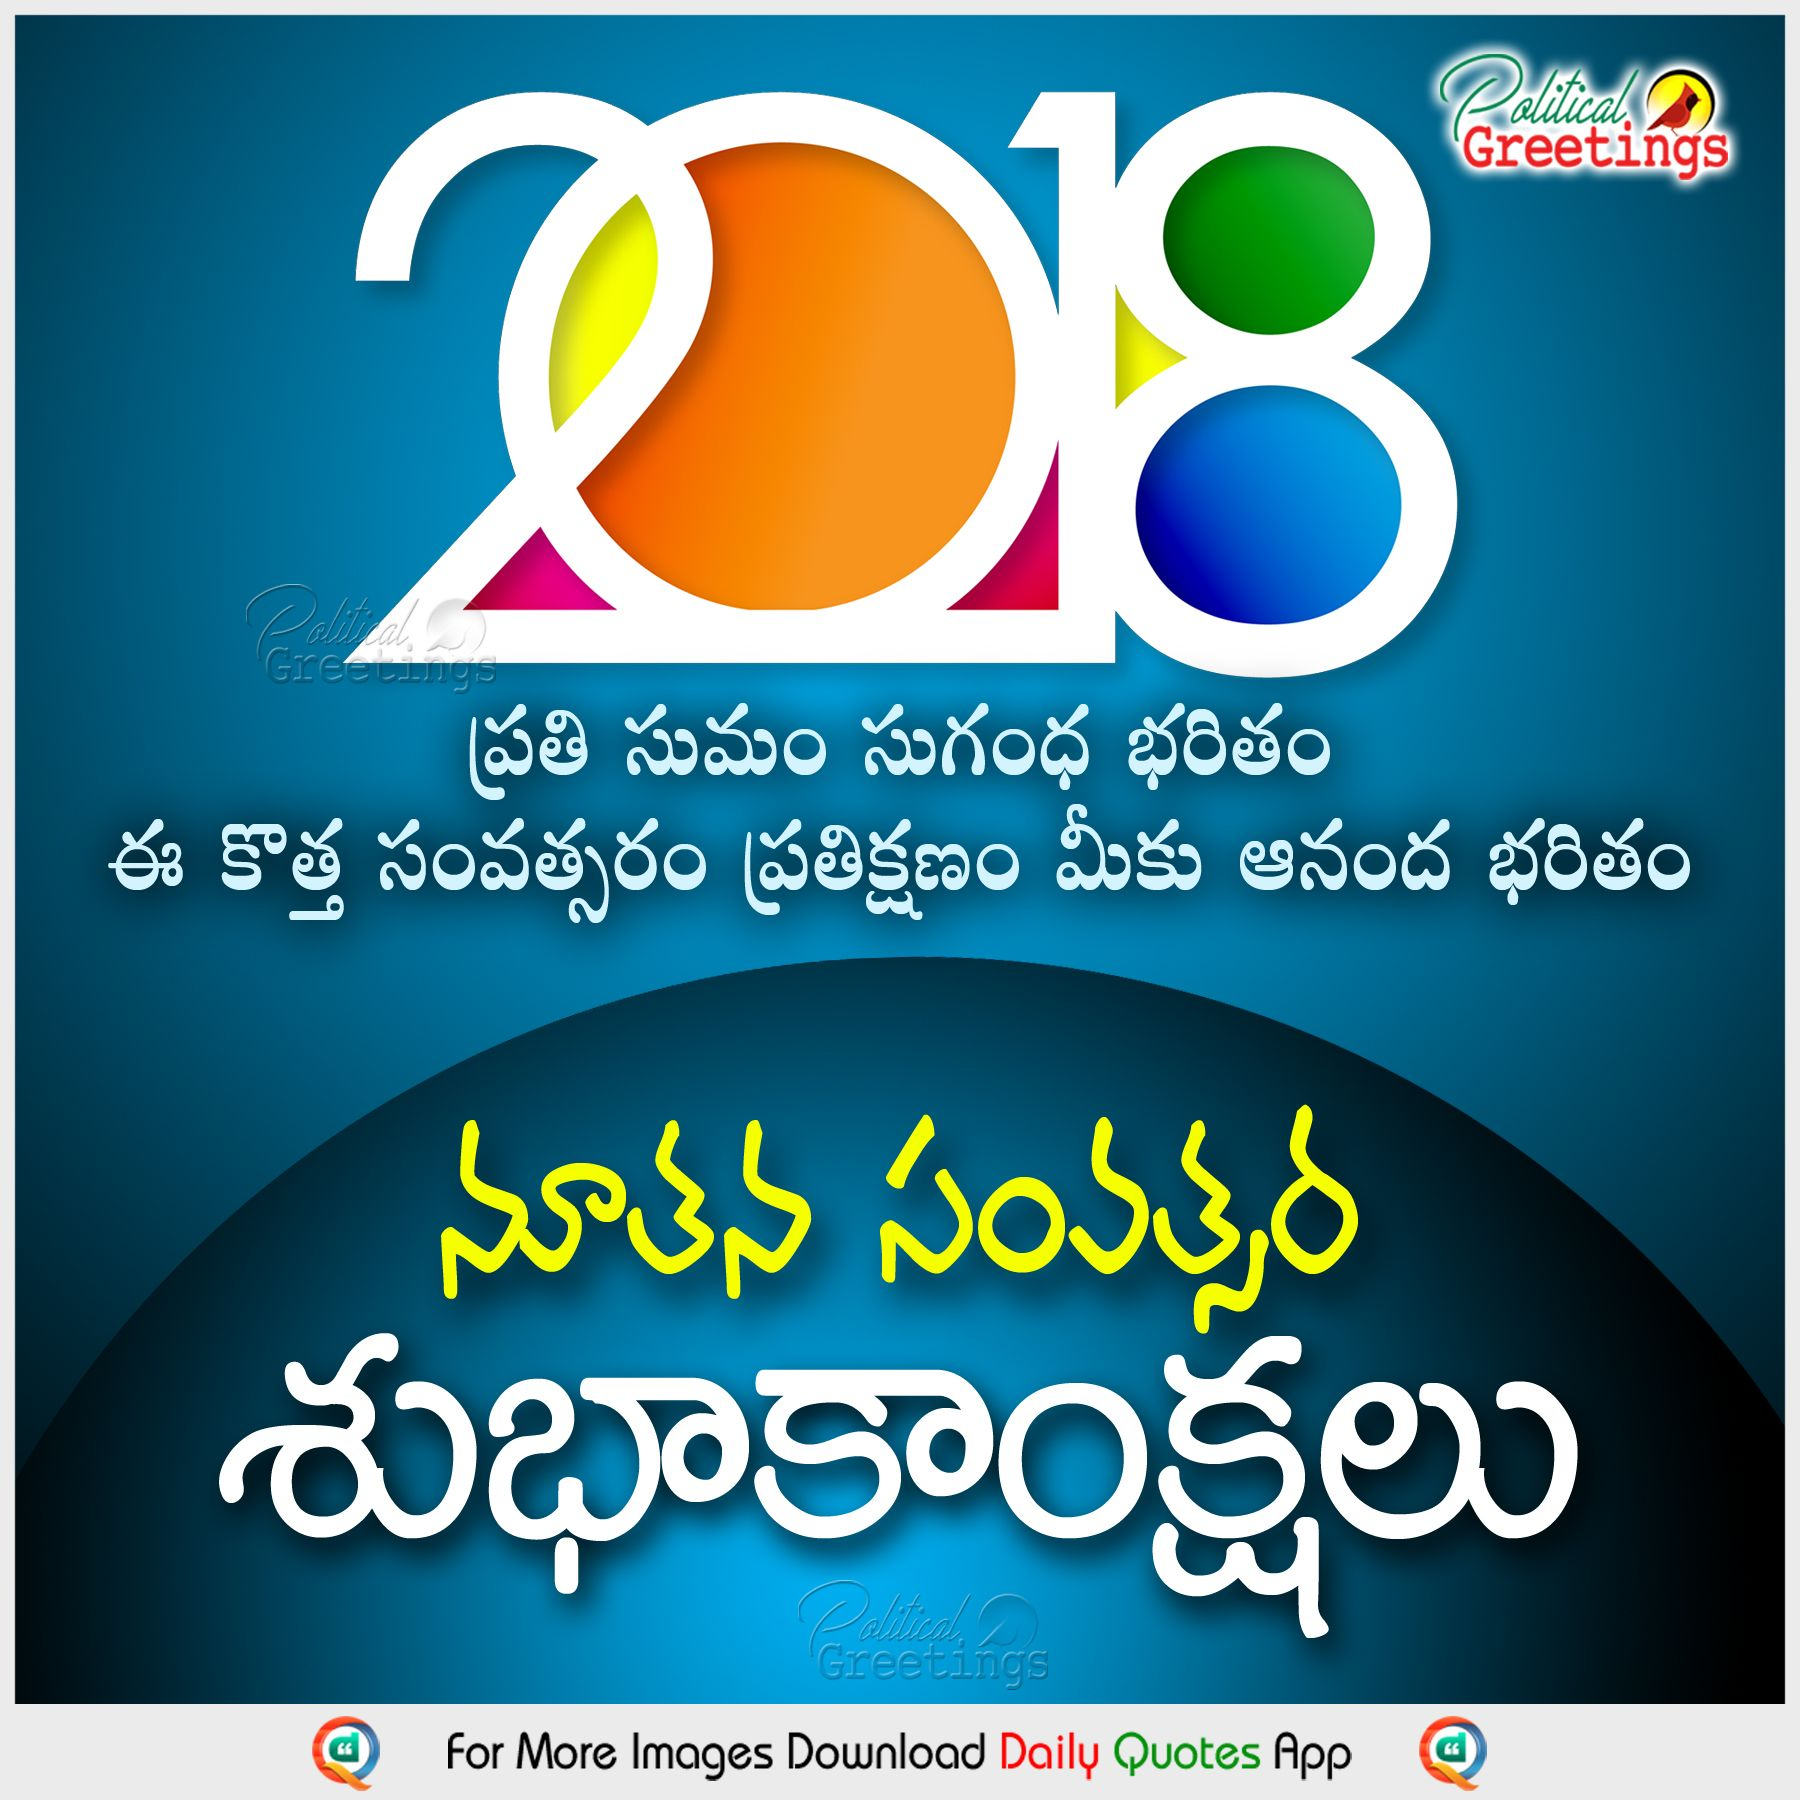 Image Result For Telugu Quotes New Year 2018 Photos Tech Logos